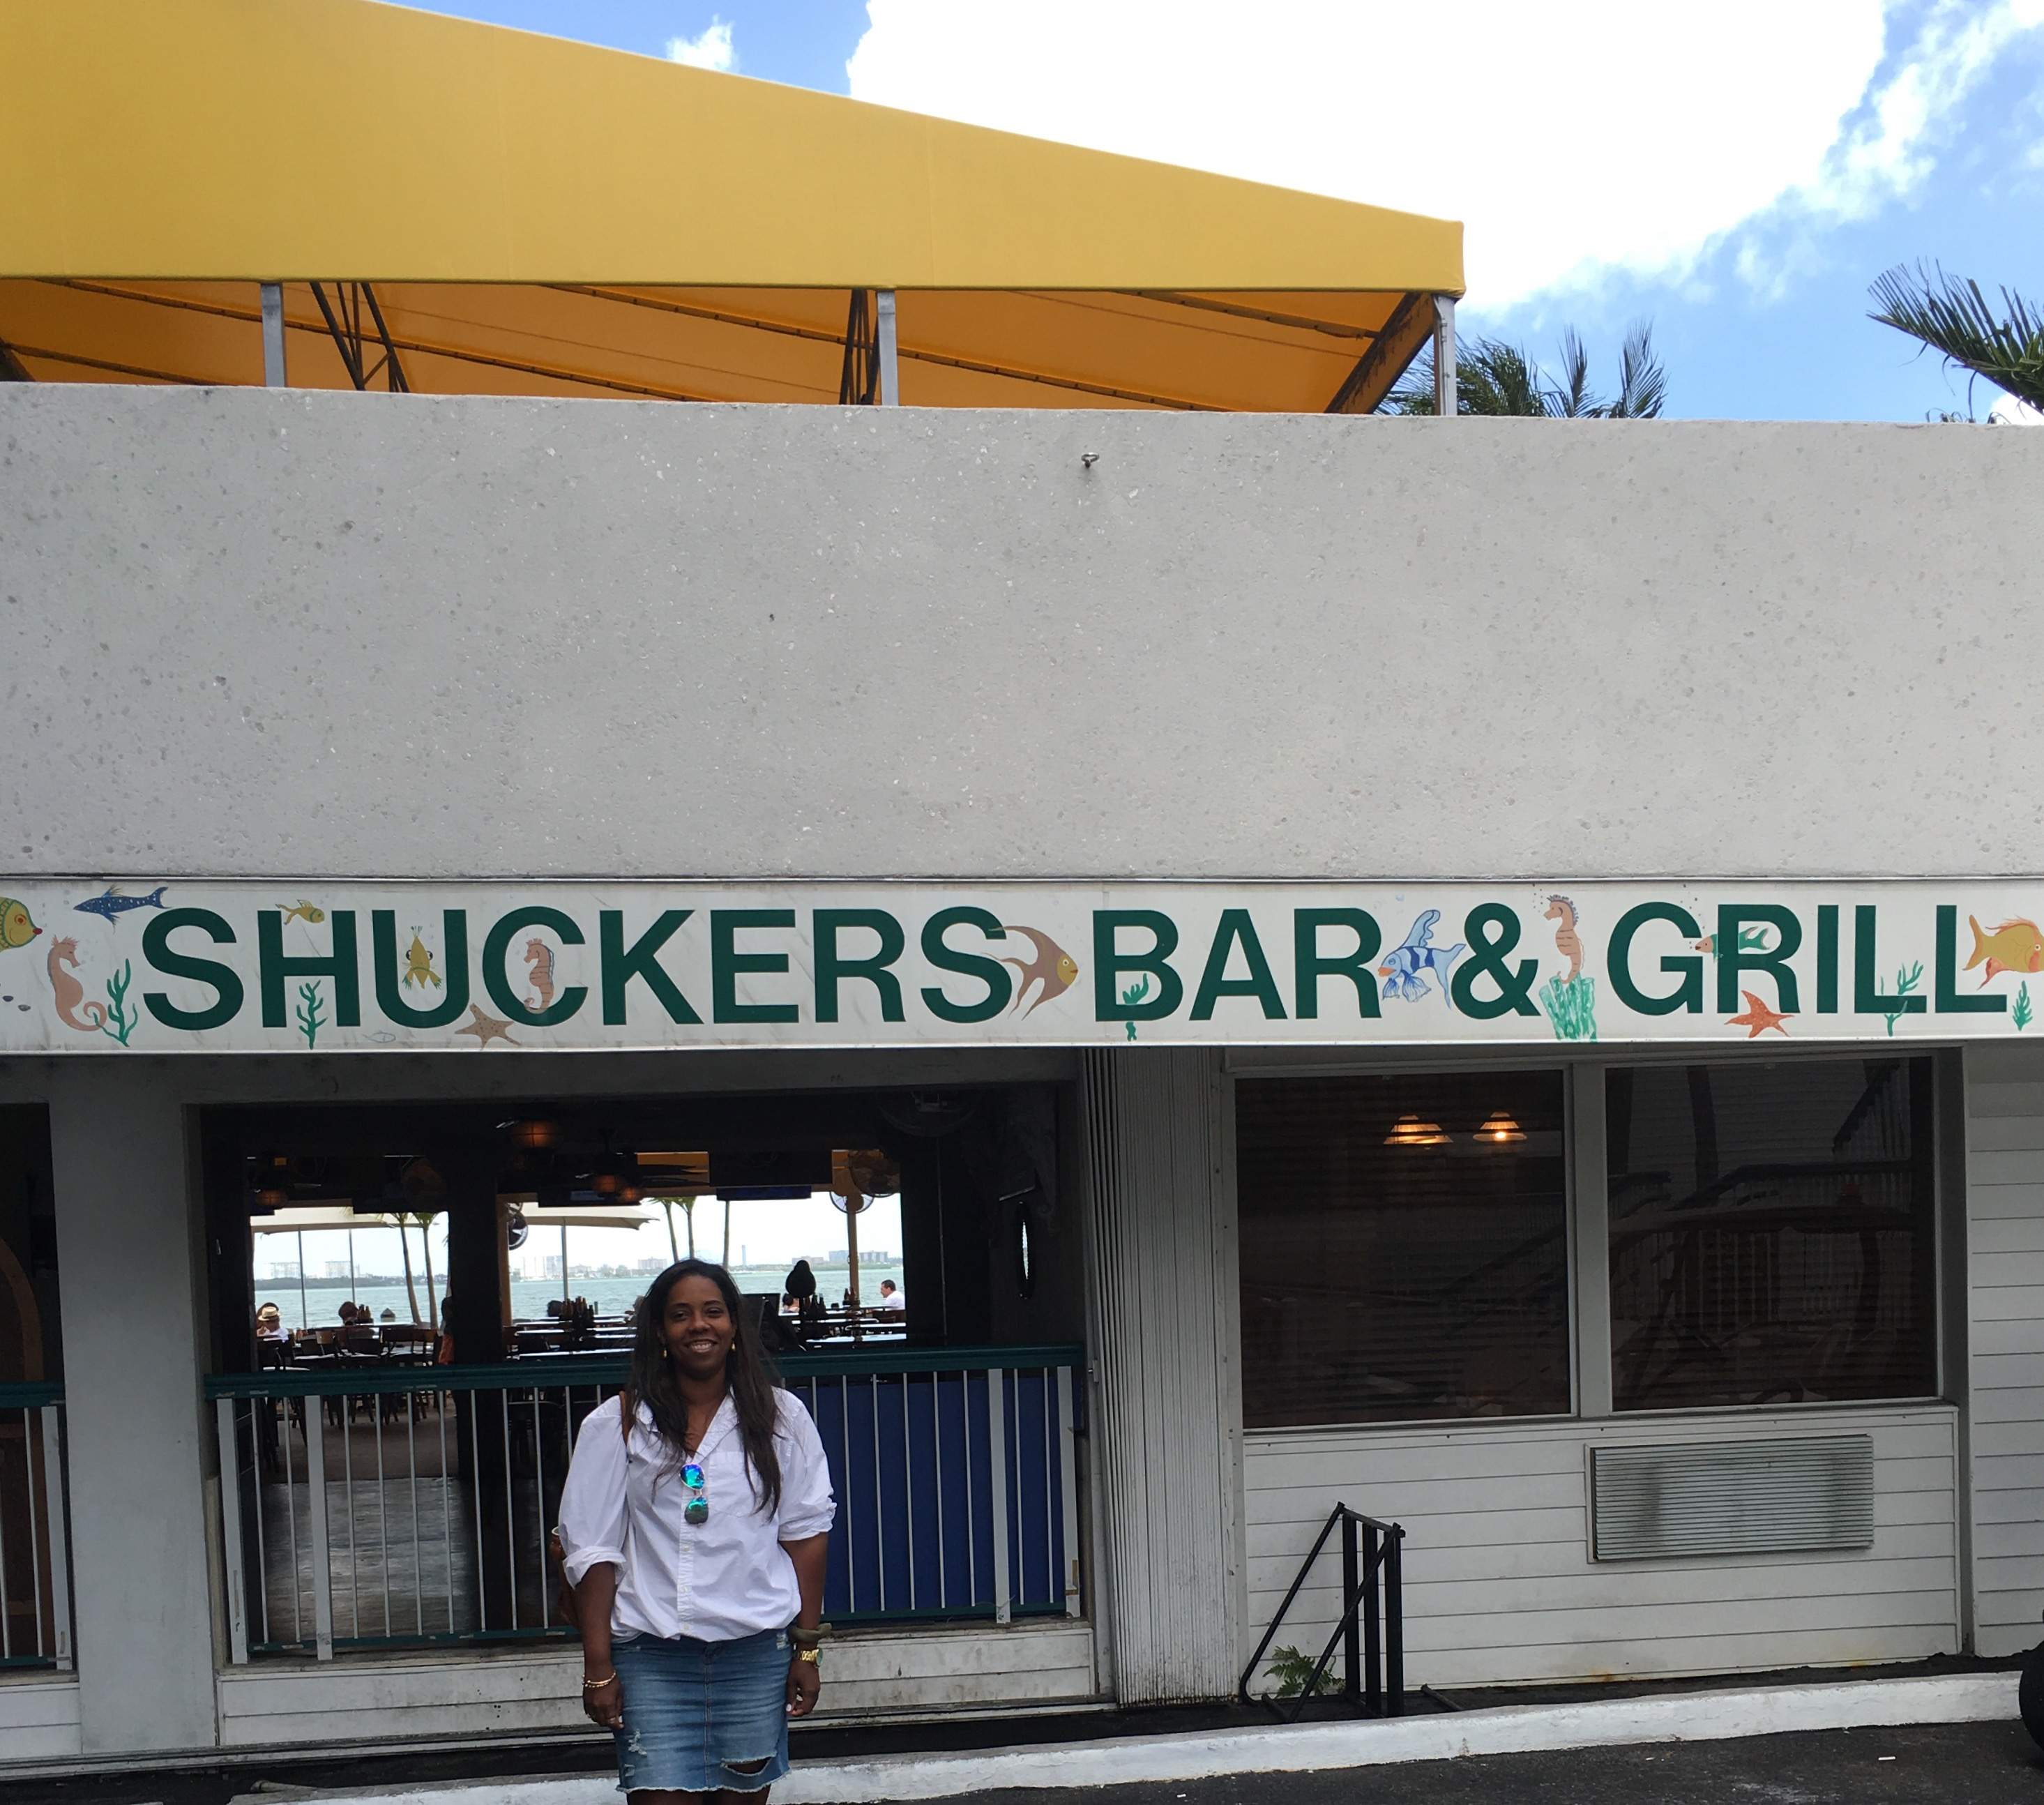 Shuckers bar and grill miami huffpost - Restaurant bar and grill ...